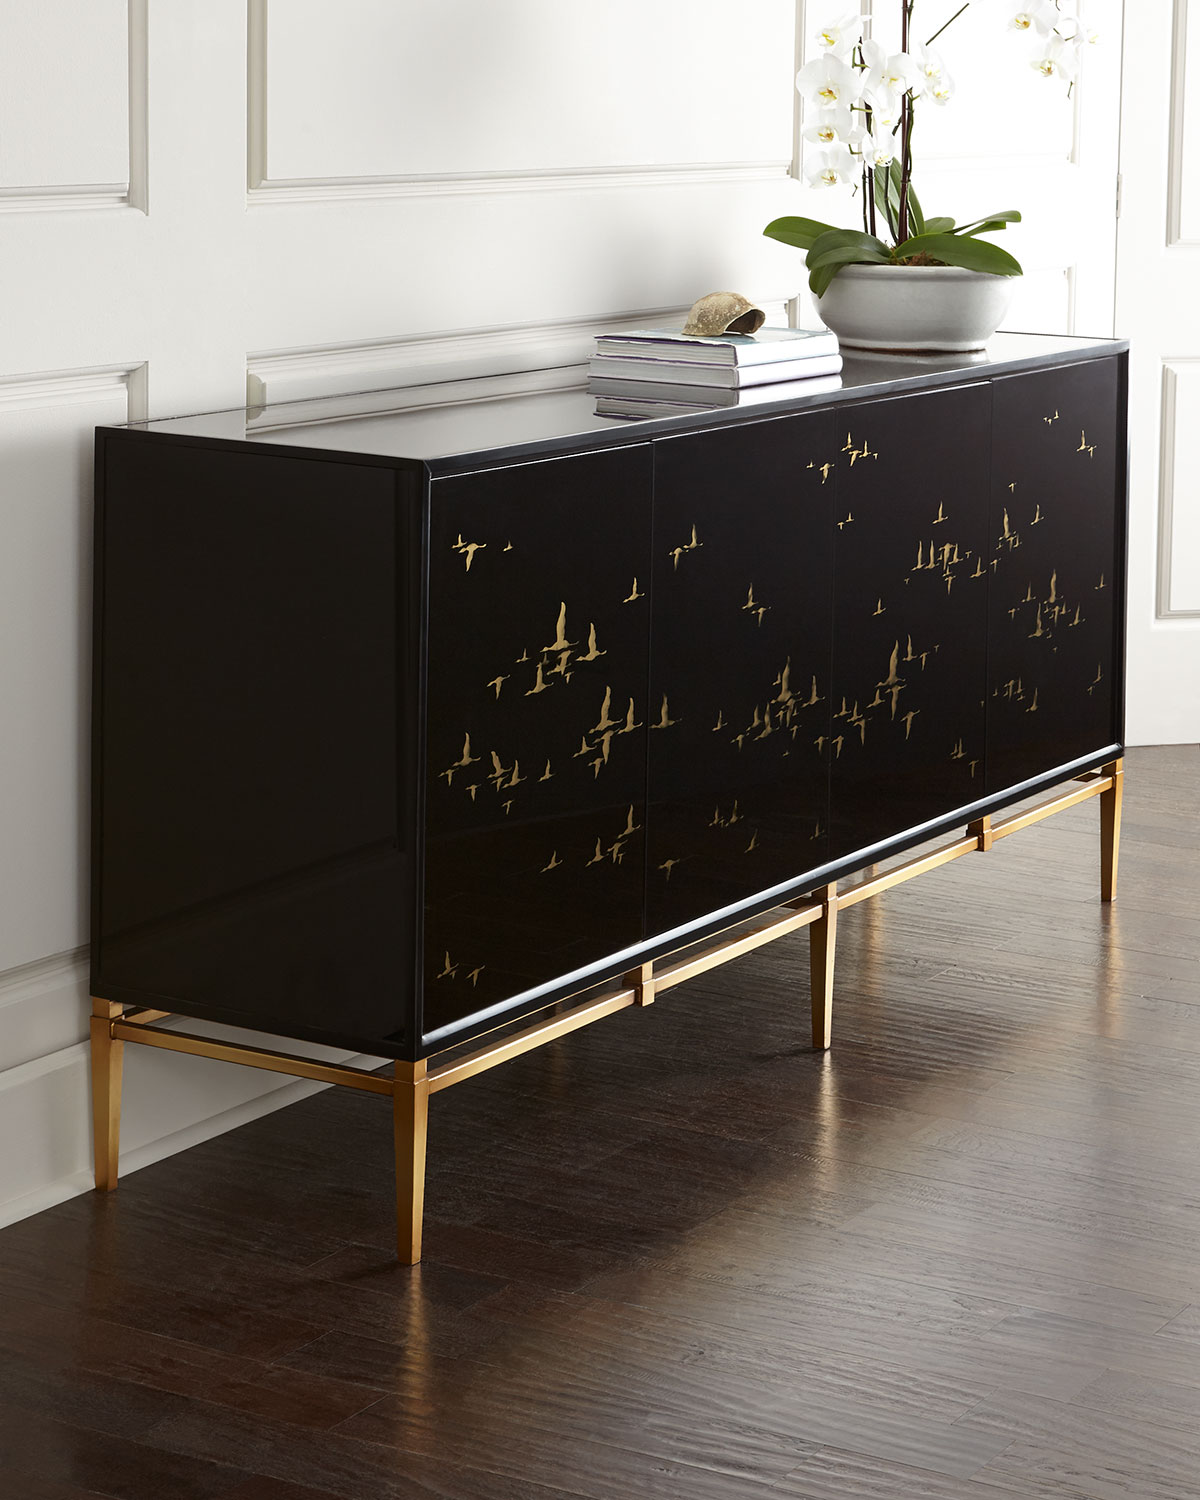 The Most Stylish Black Consoles for Living Room  Black consoles for living room The Most Stylish Black Consoles for Living Room The Most Stylish Black Consoles for Living Room3